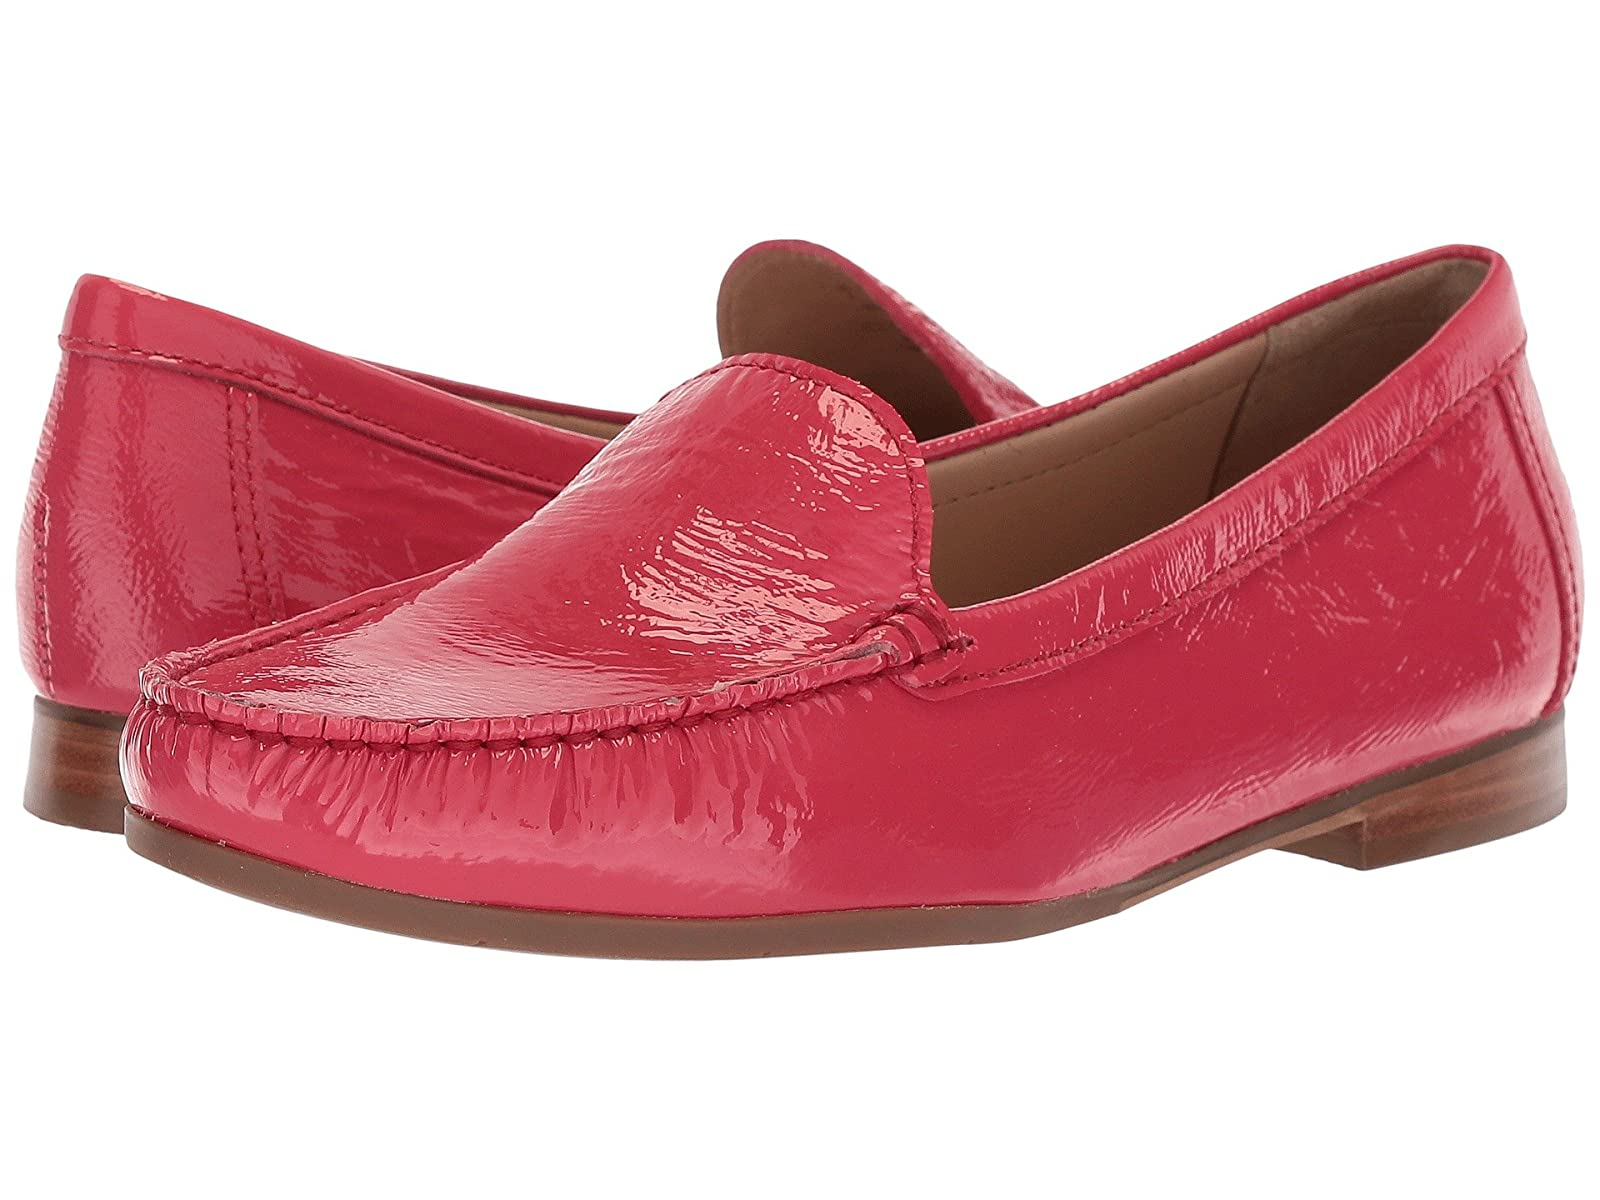 Hush Puppies Yorktese Slip-OnCheap and distinctive eye-catching shoes